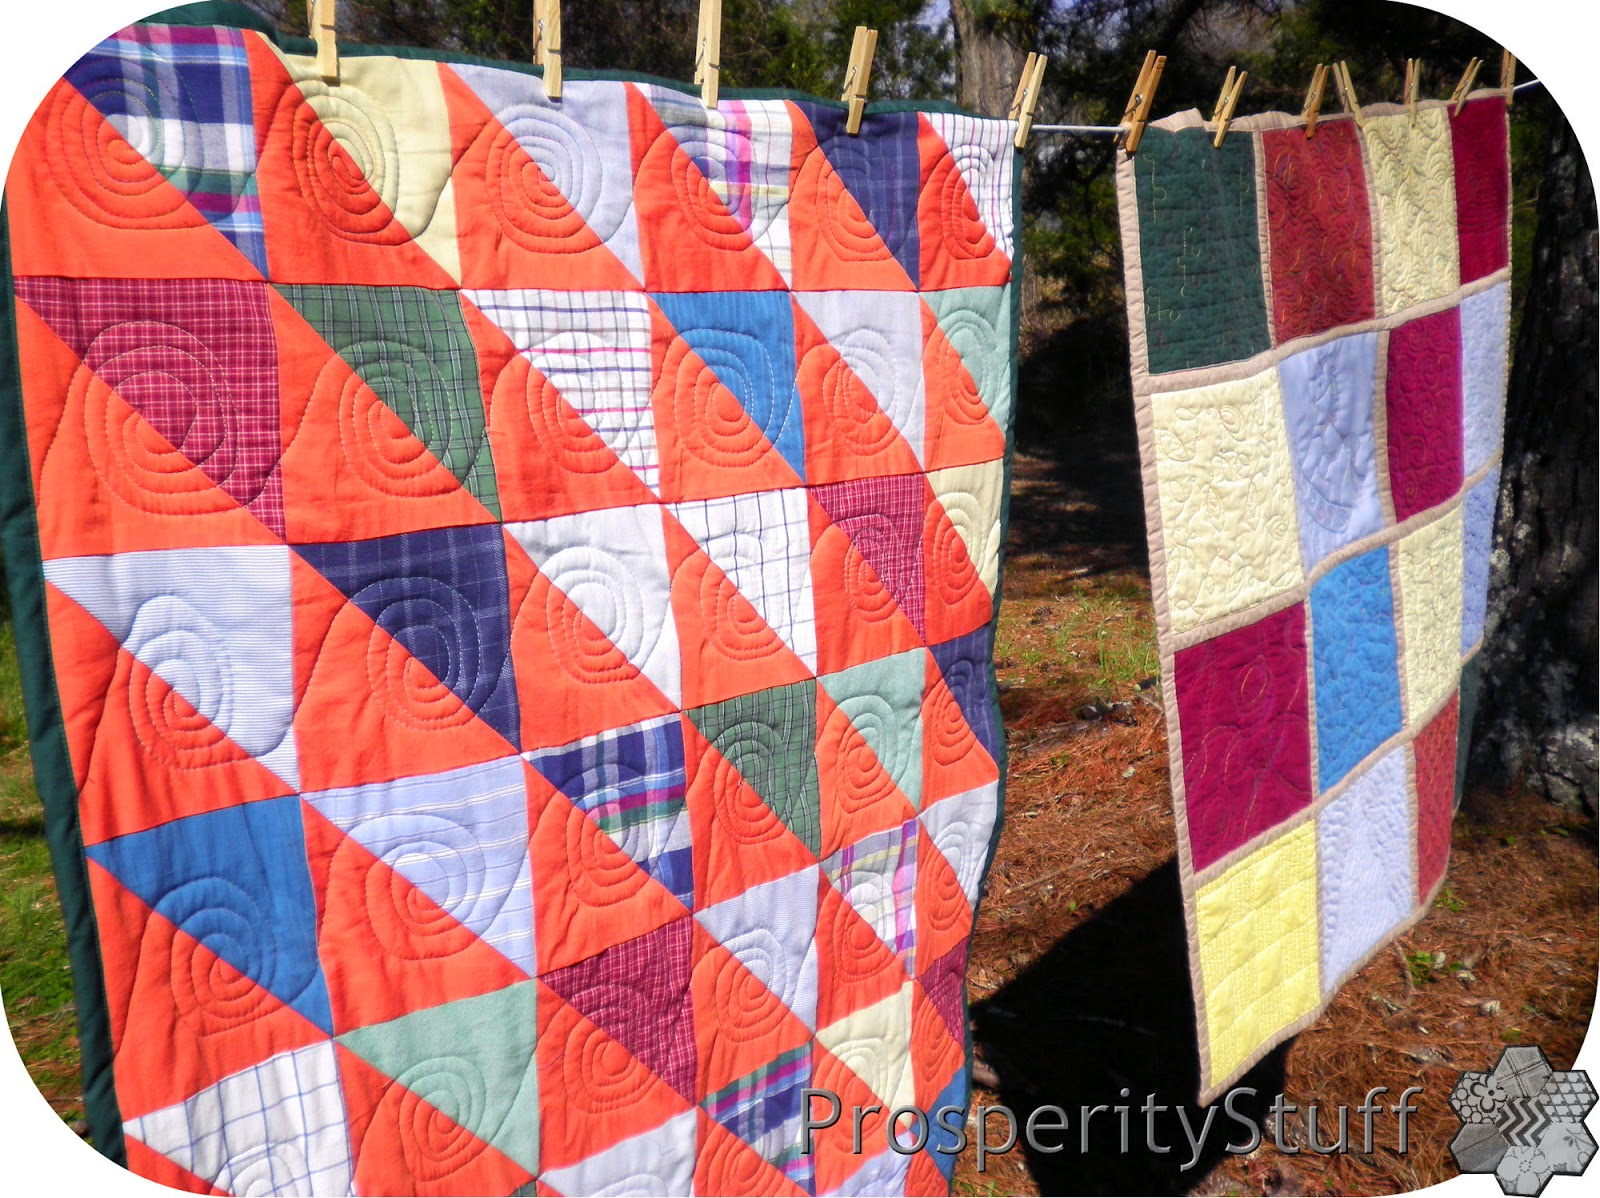 ProsperityStuff Shirts-and-Sheets Quilts on Clothesline